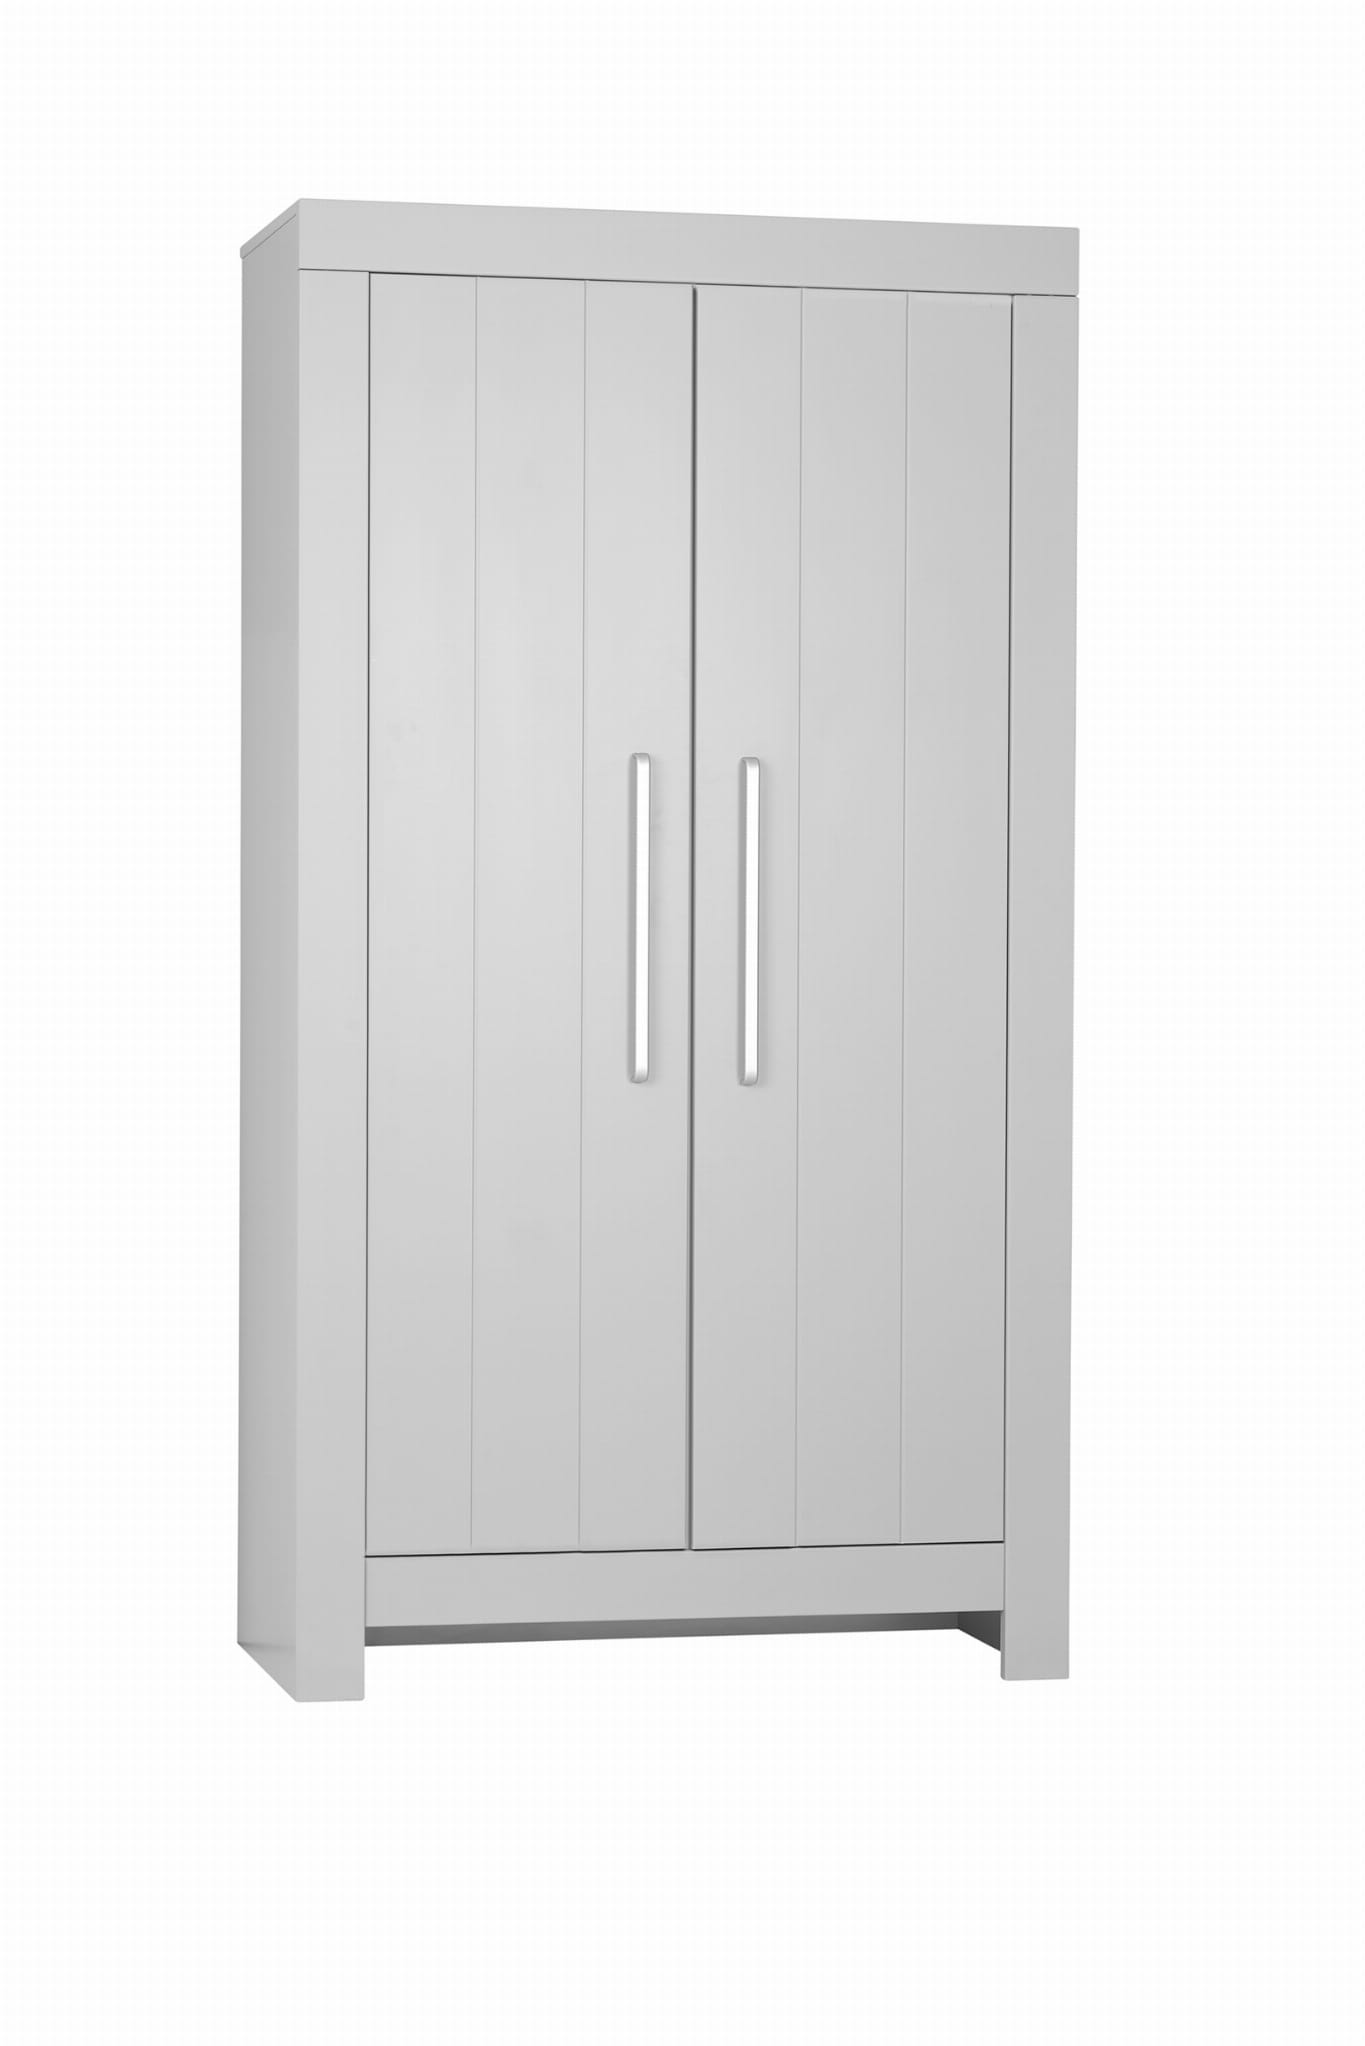 Calmo 2door wardrobe_grey_1.jpg